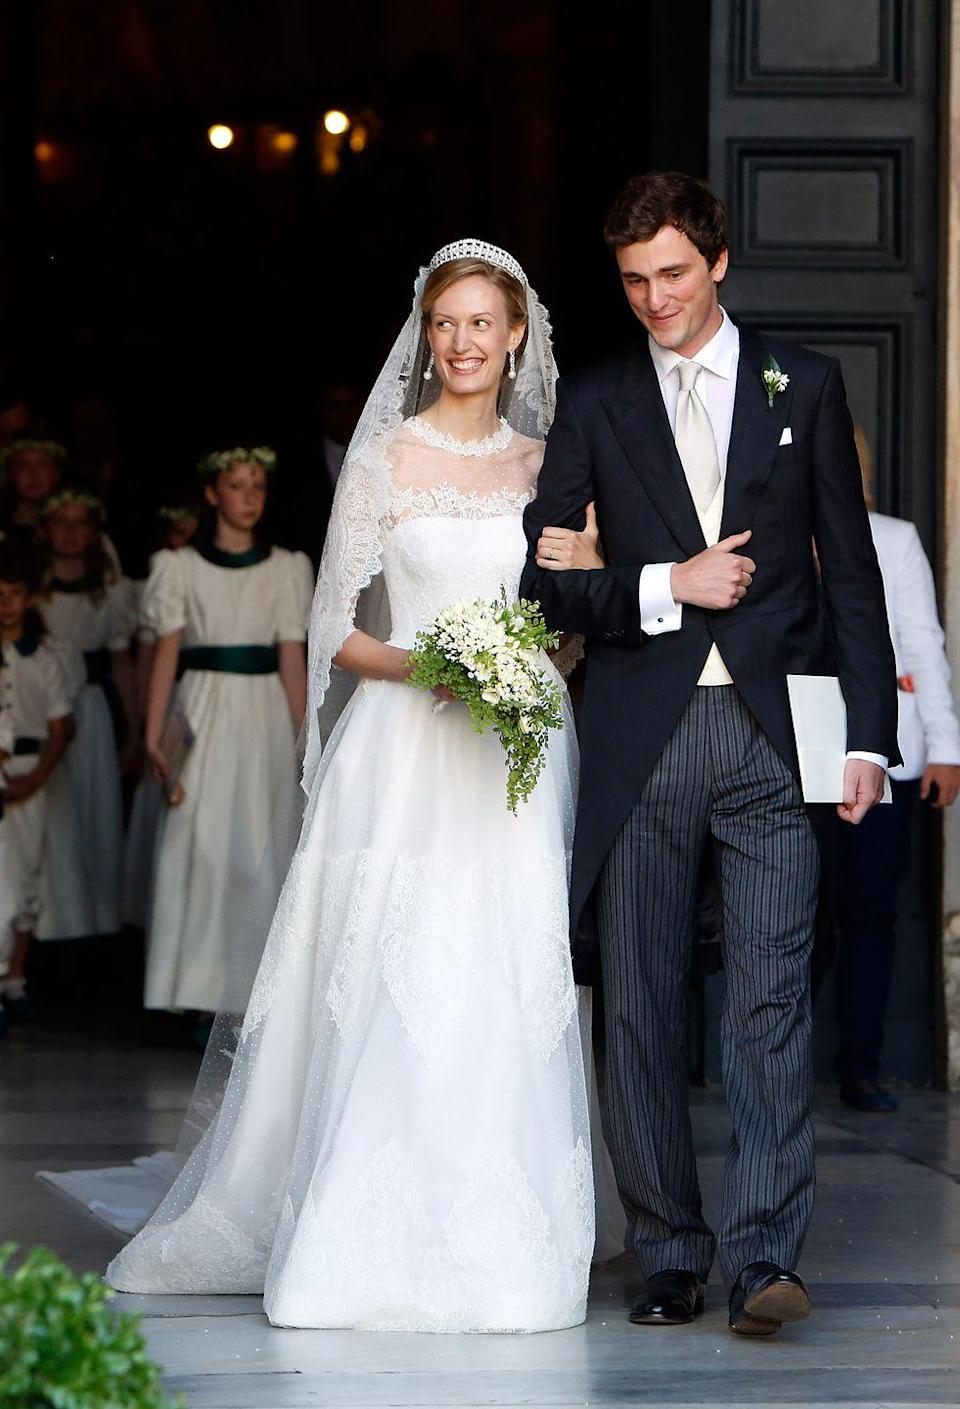 """<p>Prince Amedeo of Belgium wed his Italian fiancée in 2014 in Rome. A journalist for <span class=""""redactor-unlink"""">Bloomberg News</span>' cultural section, she and the prince met while they were students together in London. </p>"""